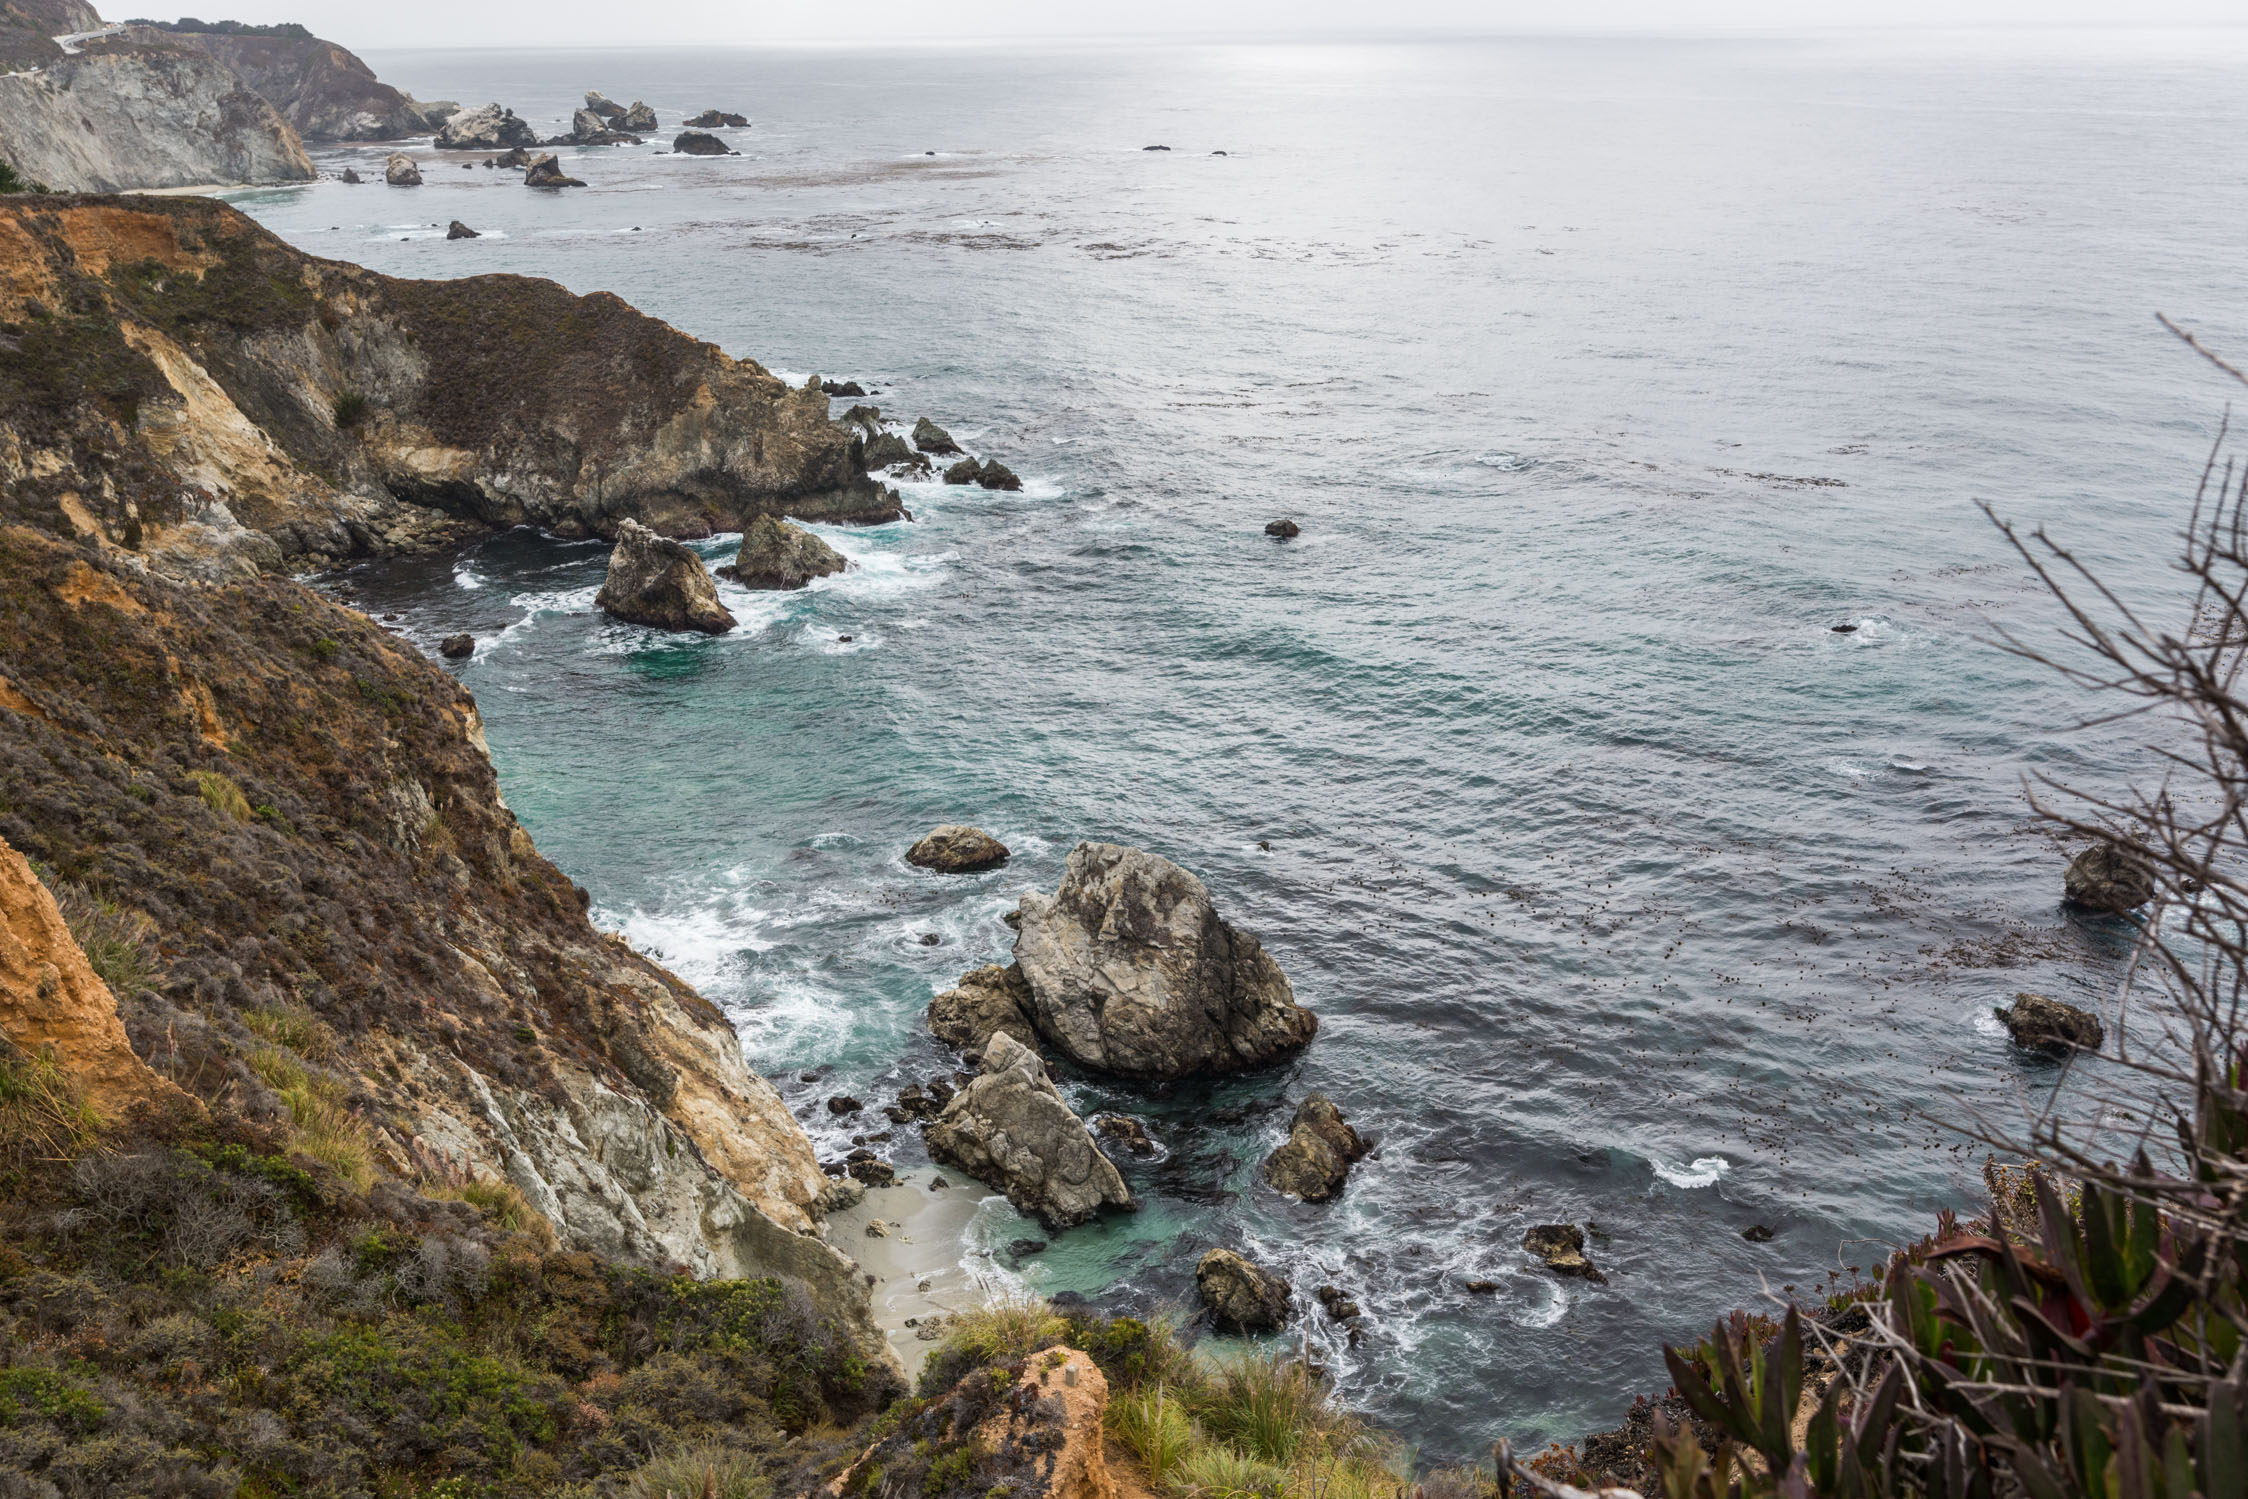 10 Things You Need To Know Before Going To Big Sur